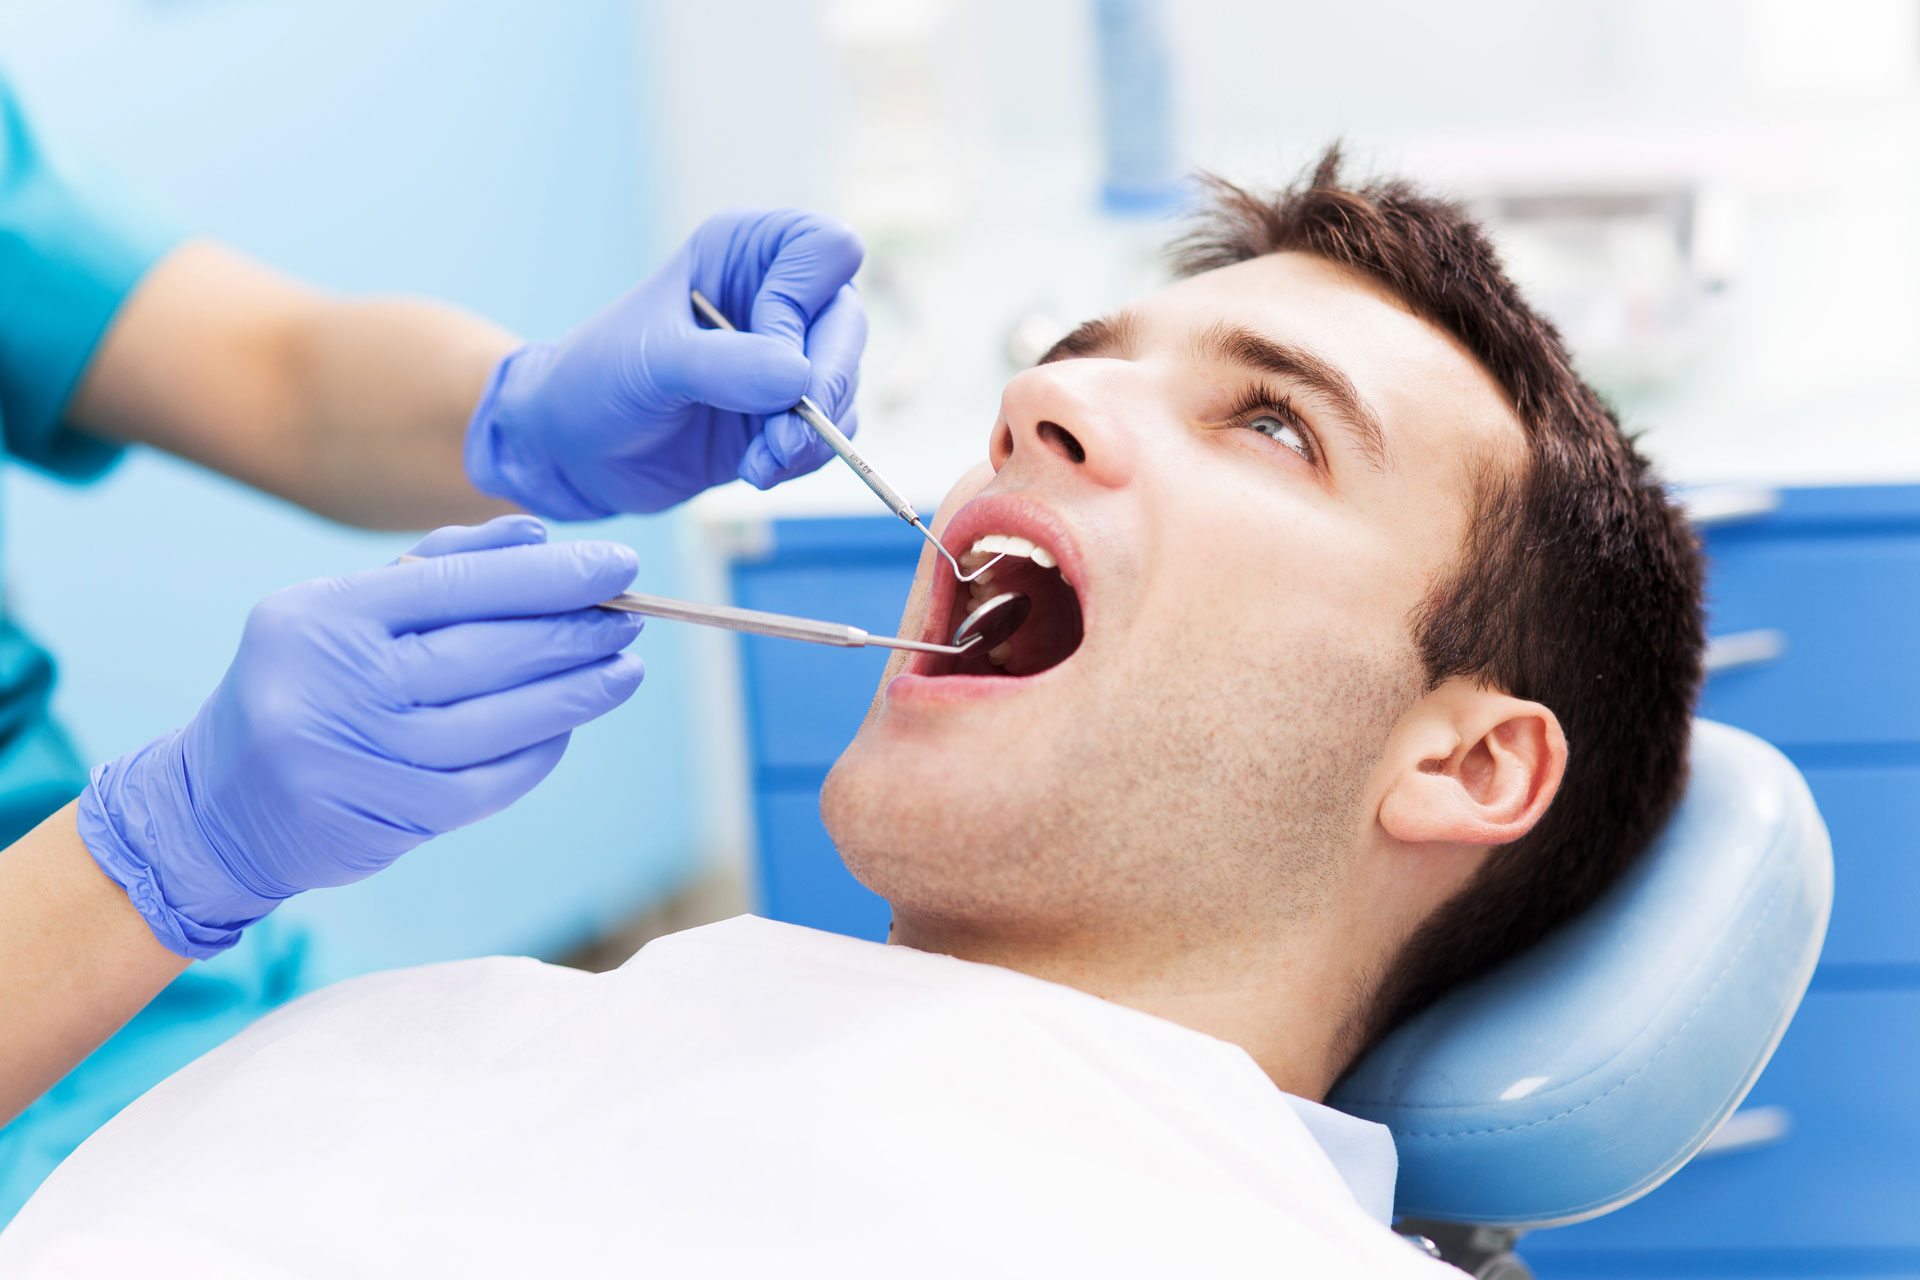 Bellevue emergency dentistry